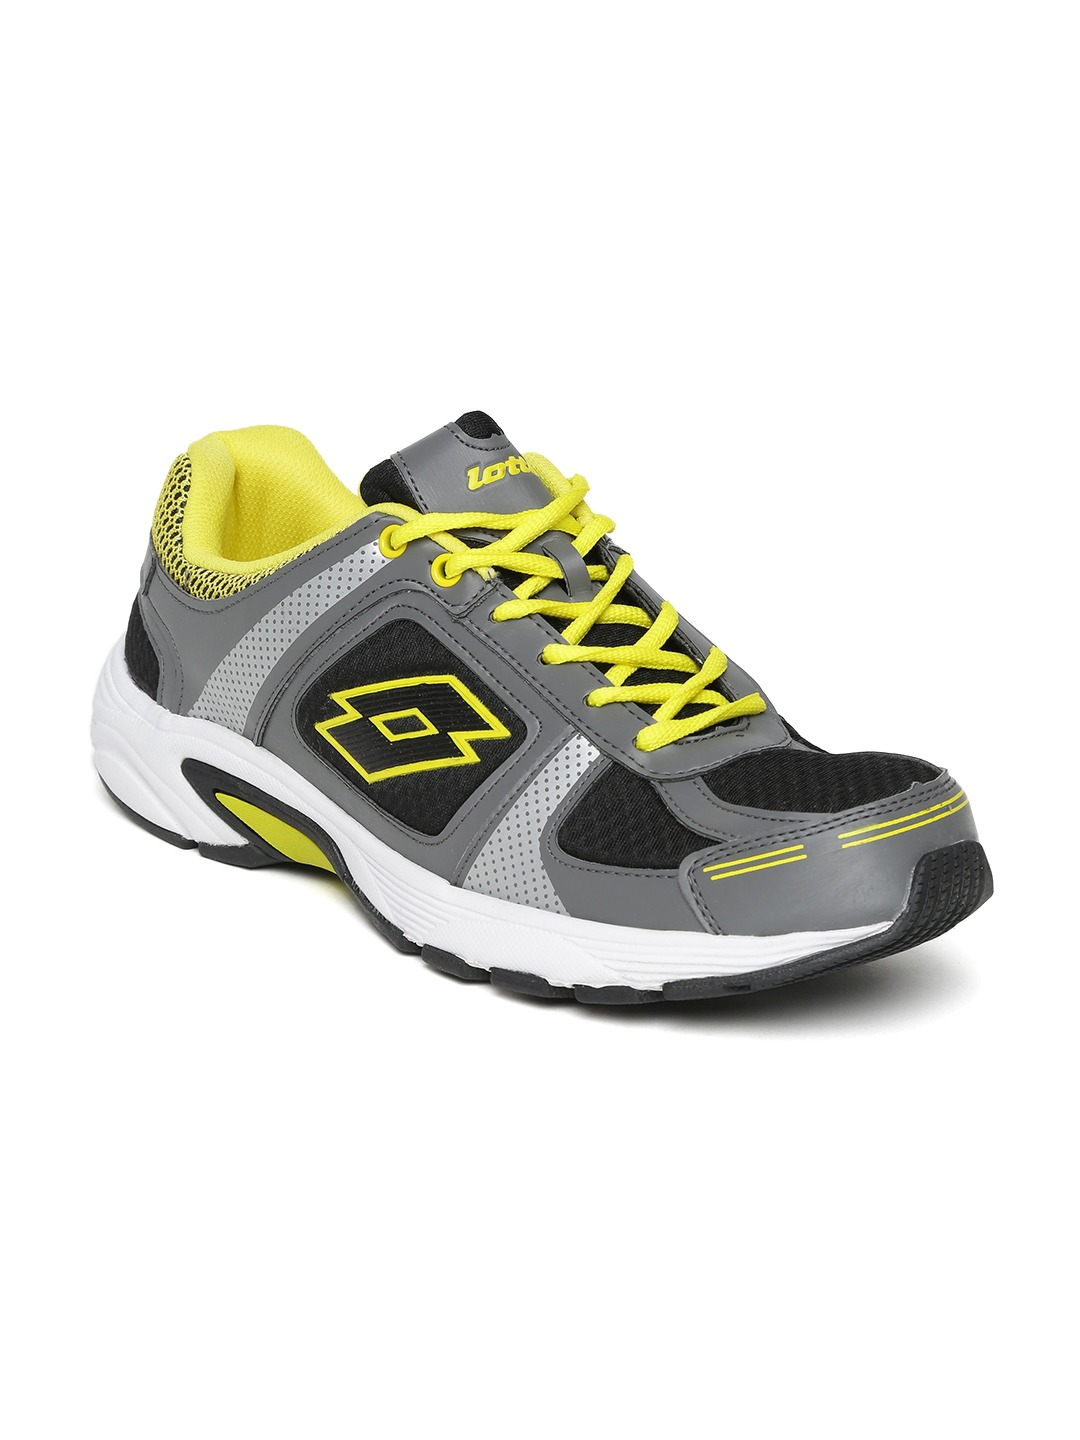 Lotto Moonrun Shoes Price